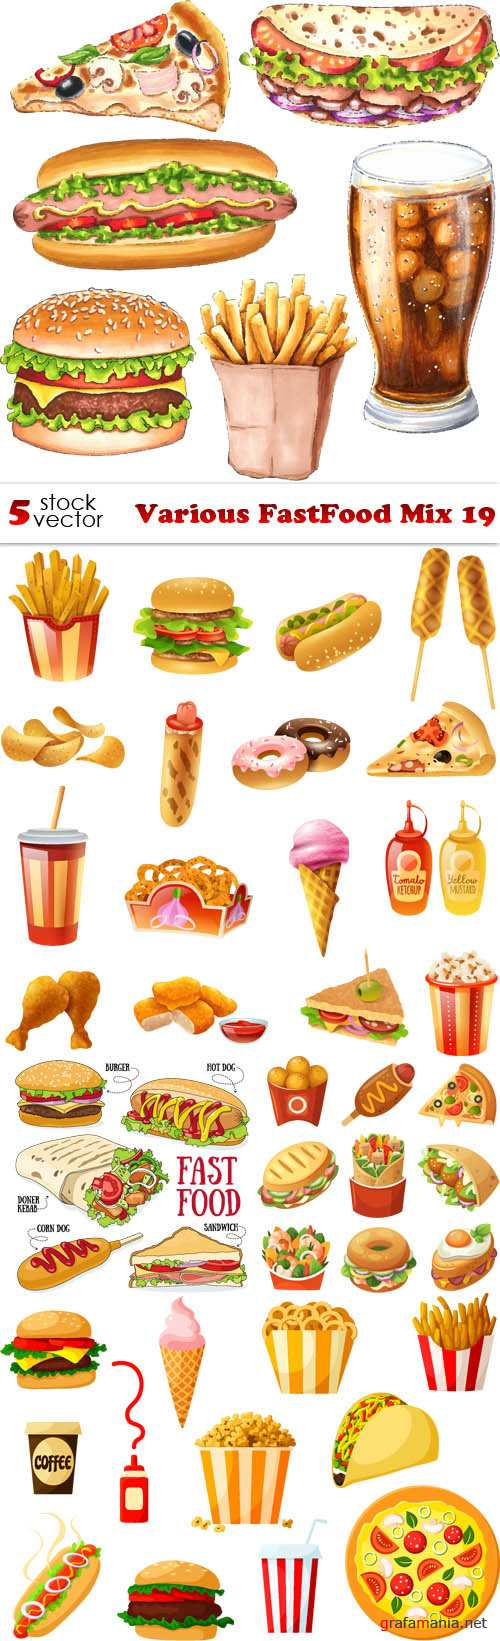 Vectors - Various FastFood Mix 19